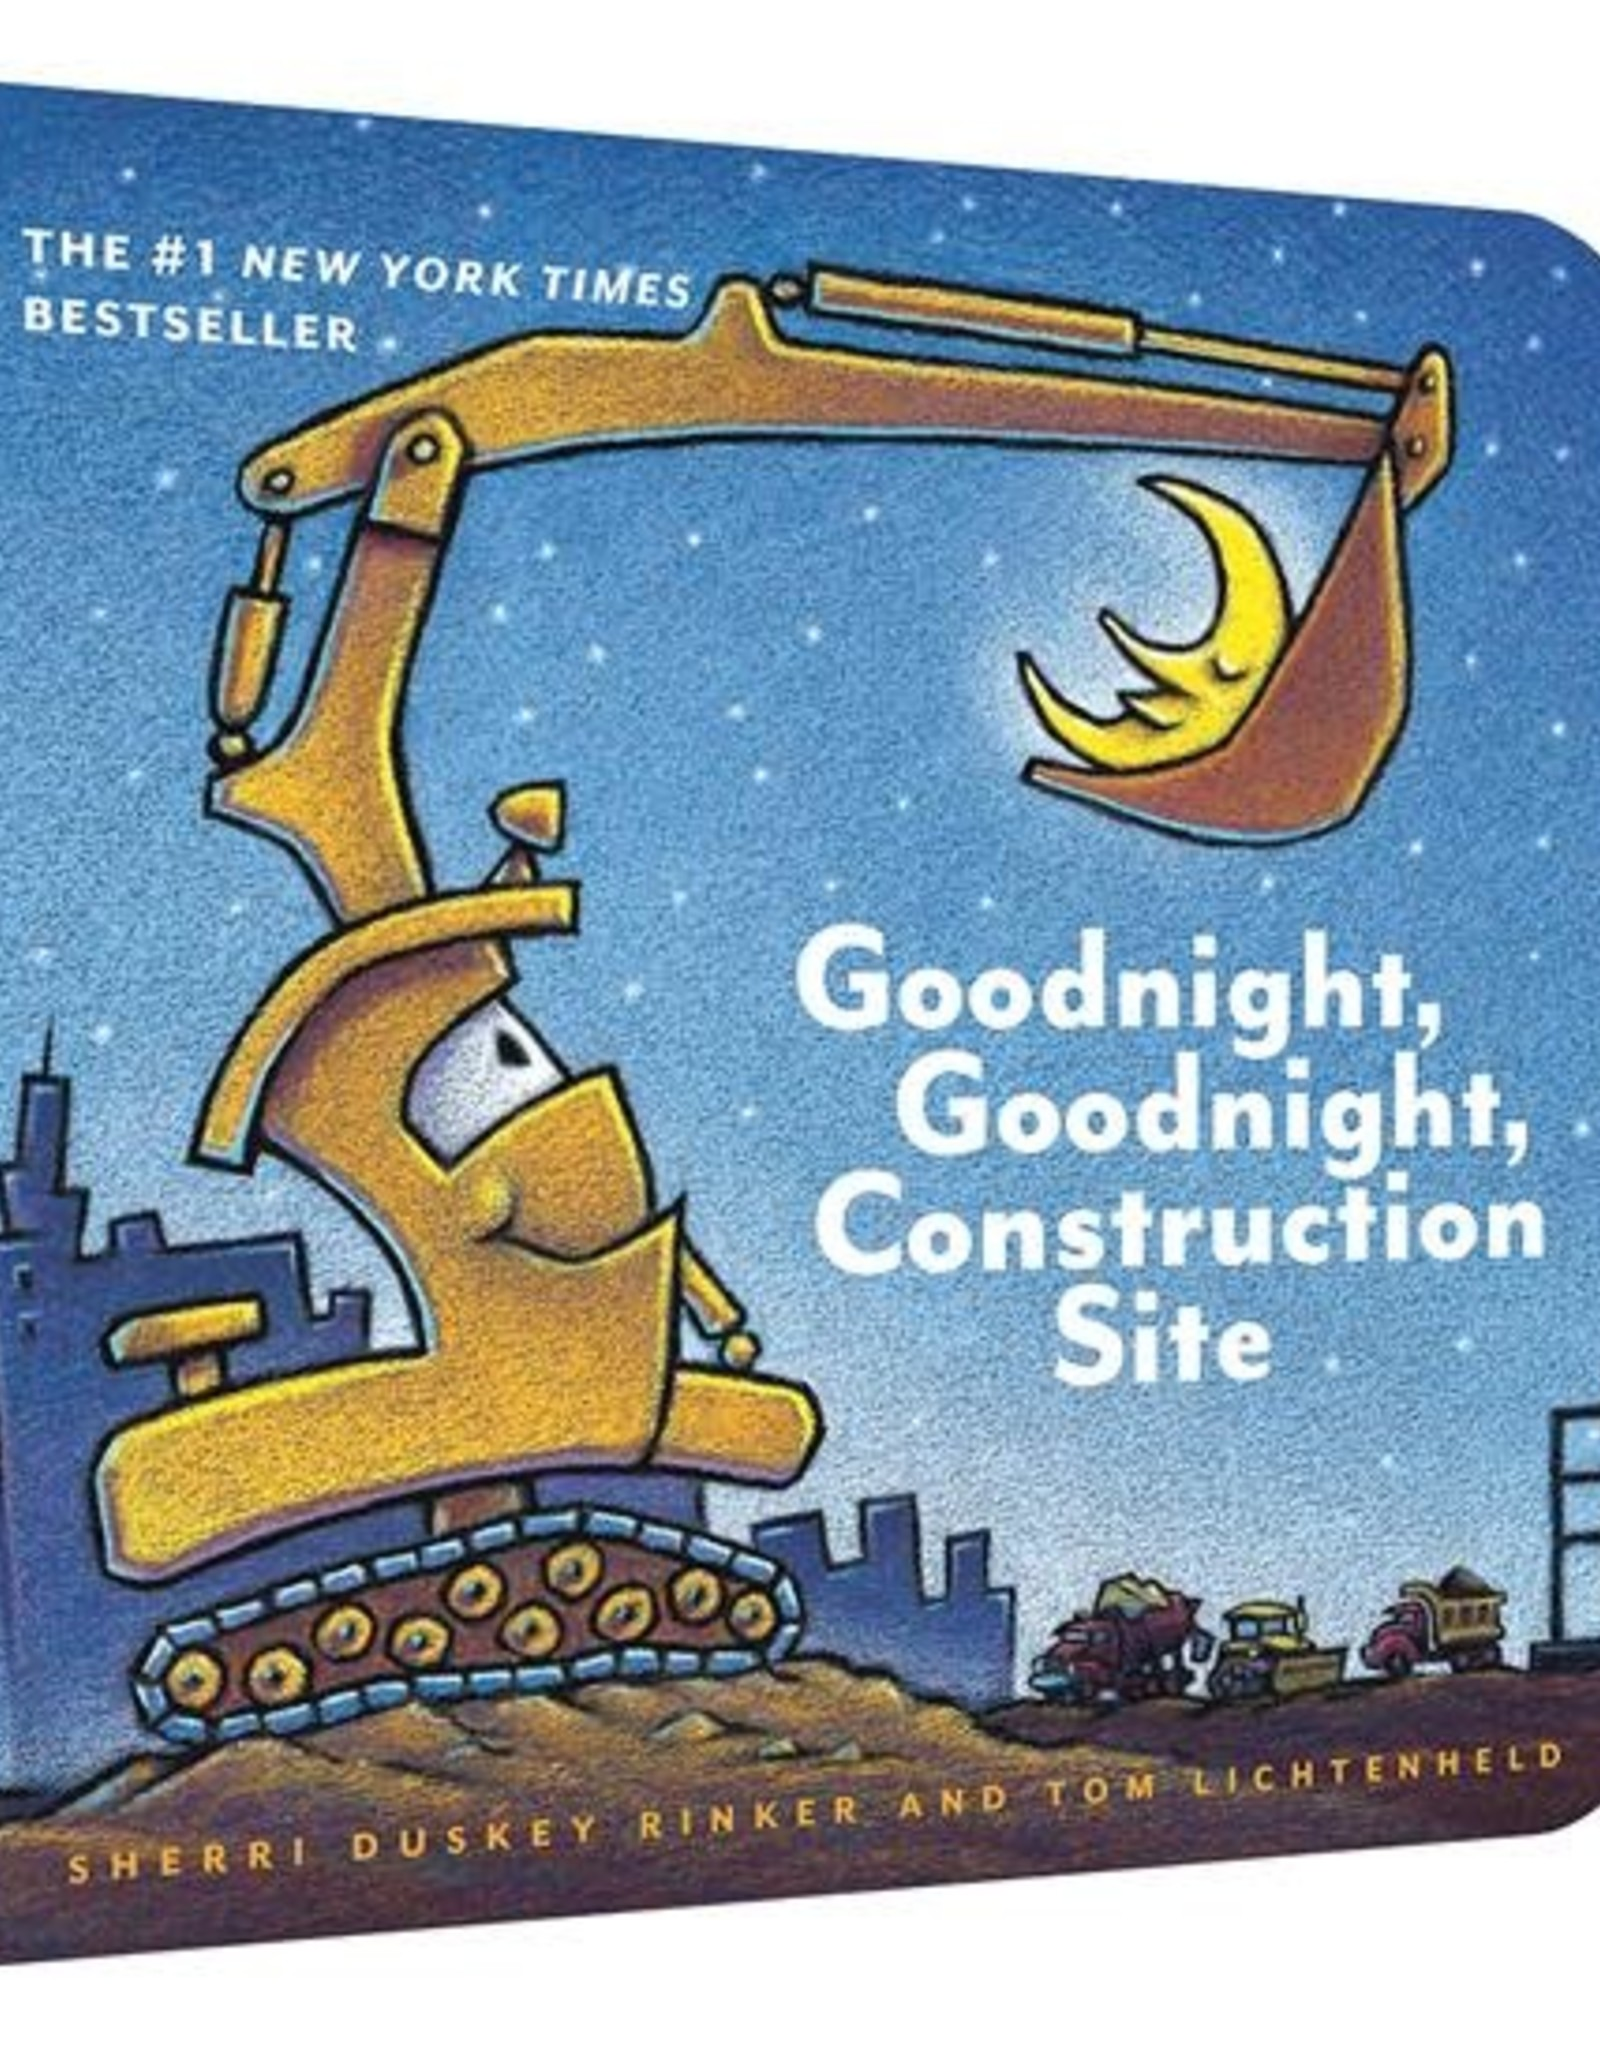 Chronicle Books Board Book Goodnight Goodnight Construction Site